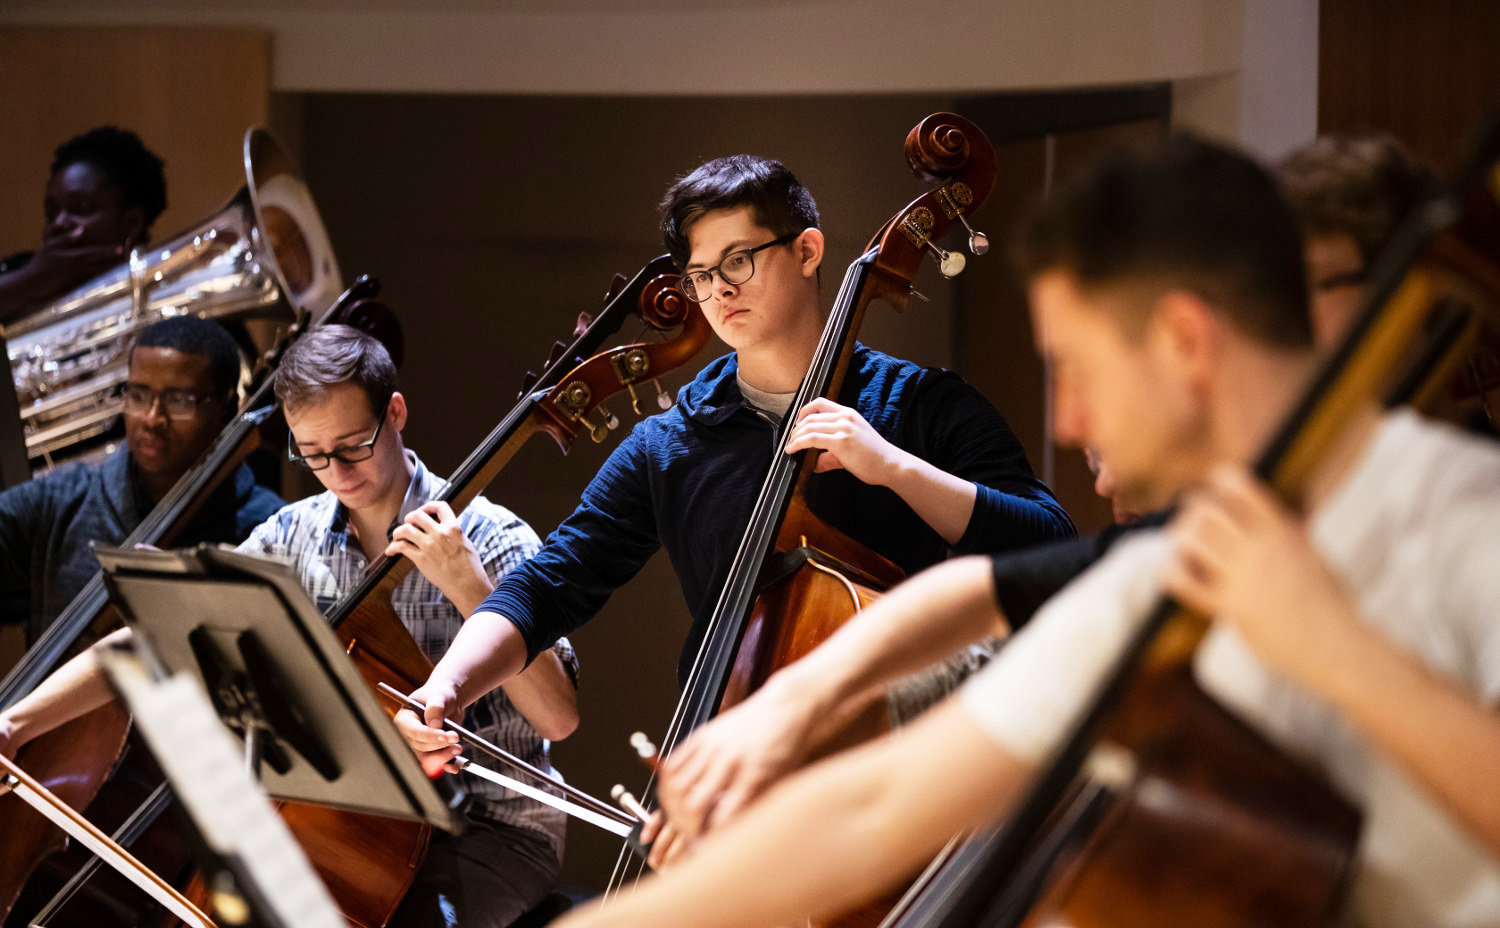 Ithaca College students perform during an orchestra rehearsal in 2018. Those interviewed cited IC as a strong source of arts for the surrounding community, helping to create a multi-cultural atmosphere that all Ithacans can enjoy.